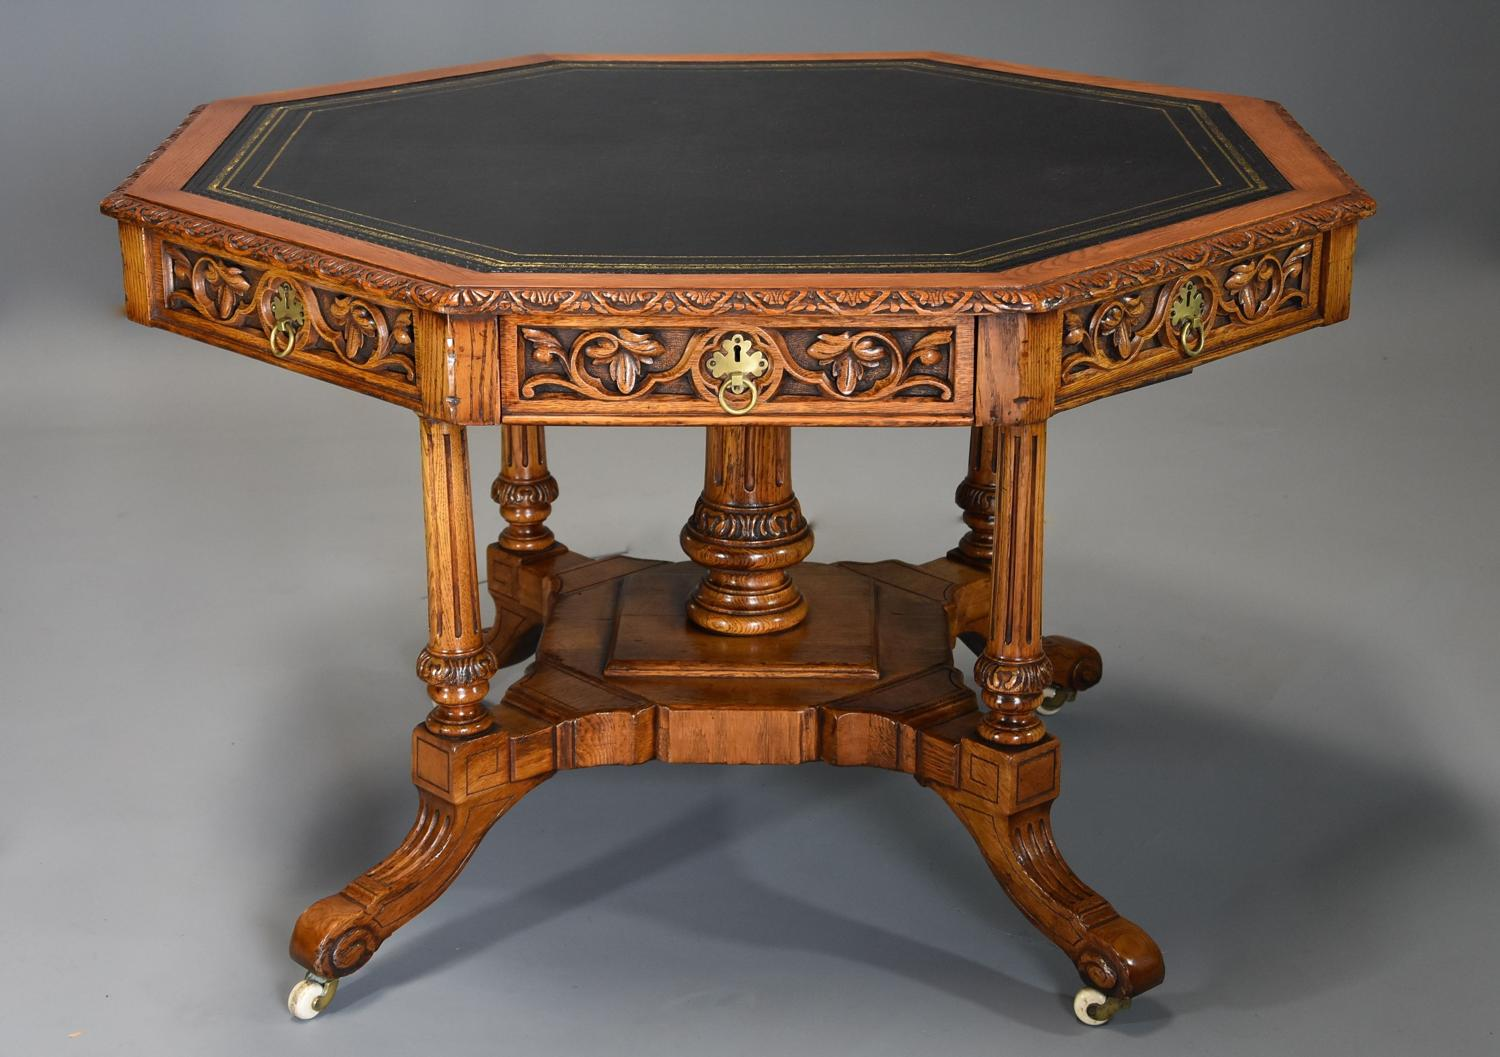 19thc oak octagonal library table by T.H. Filmer & Sons